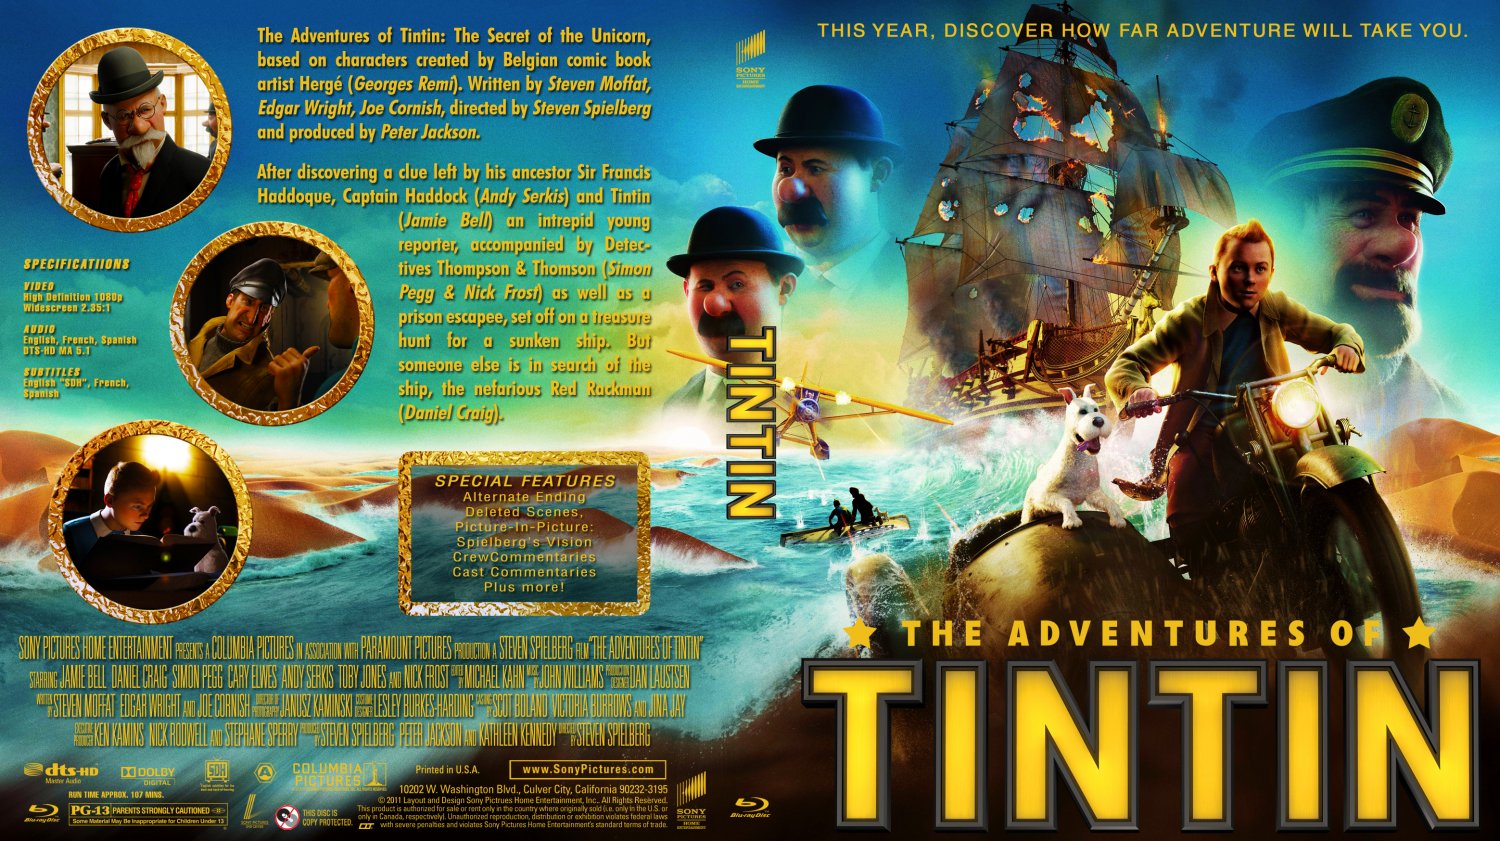 Download Filem The Adventures Of Tintin 2011 Bluray The Adventures of Tintin Movie Blu Ray Custom Covers x